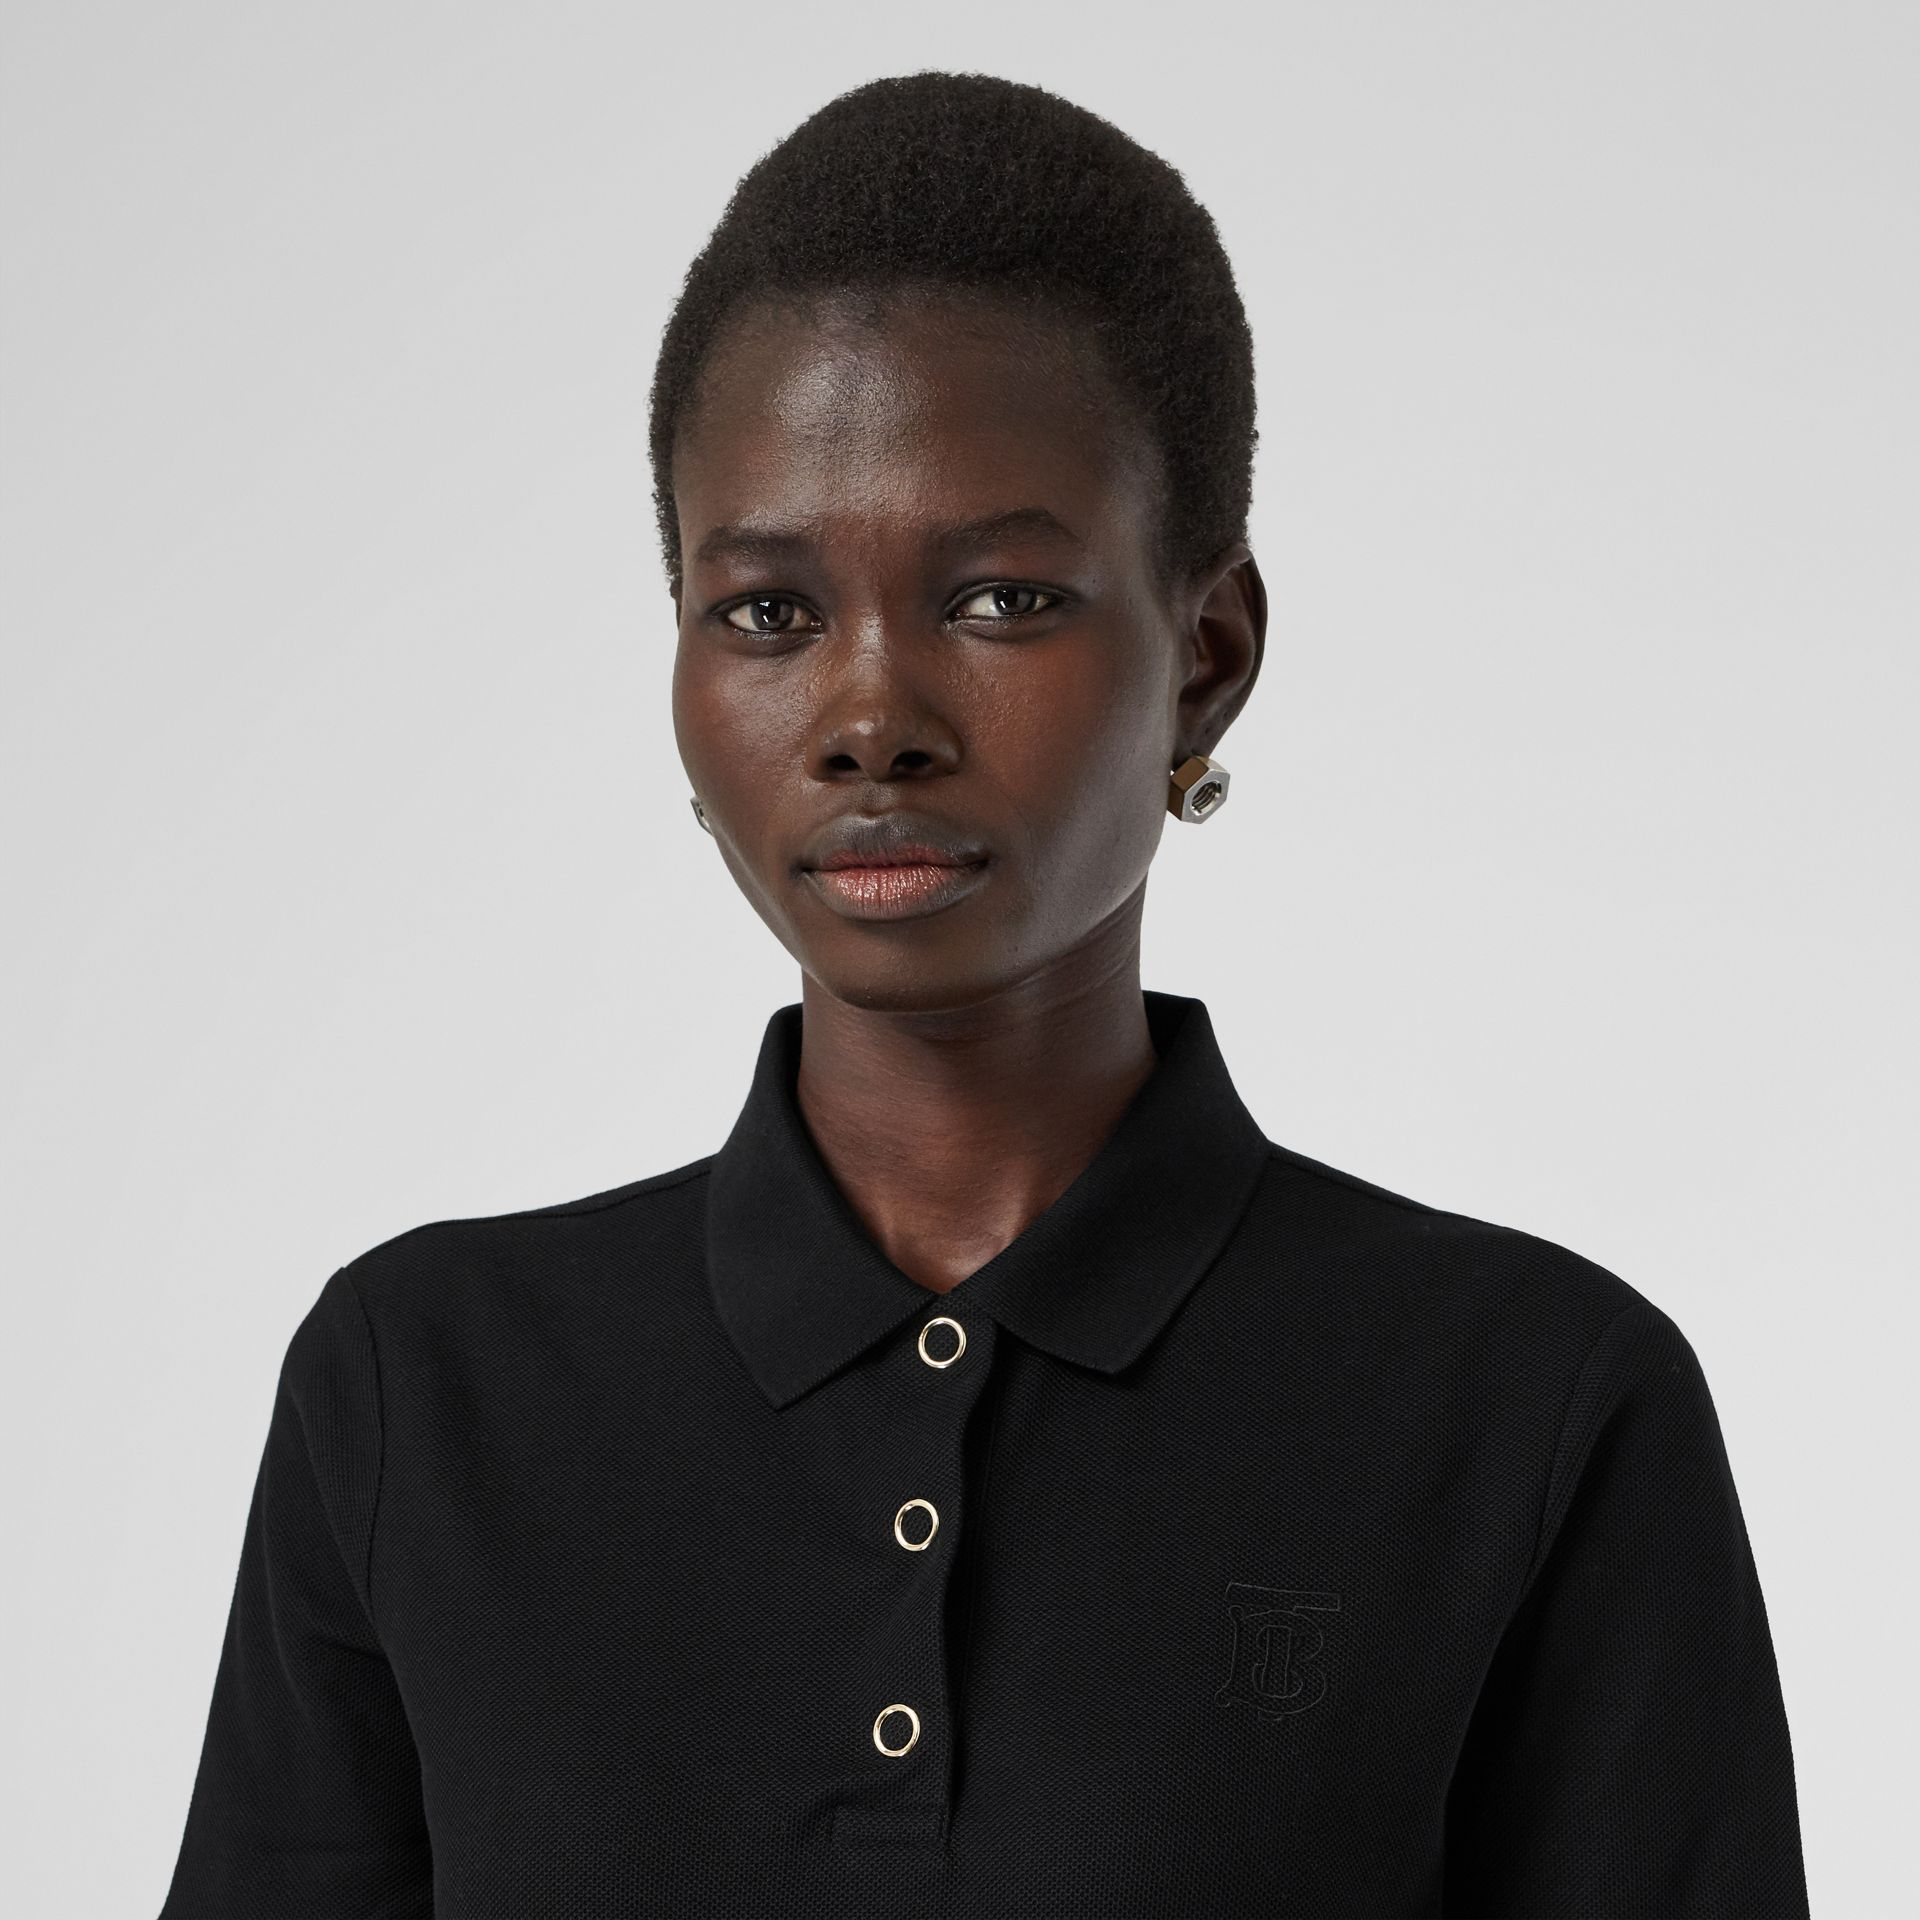 Monogram Motif Cotton Piqué Polo Shirt in Black - Women | Burberry Hong Kong S.A.R - gallery image 1